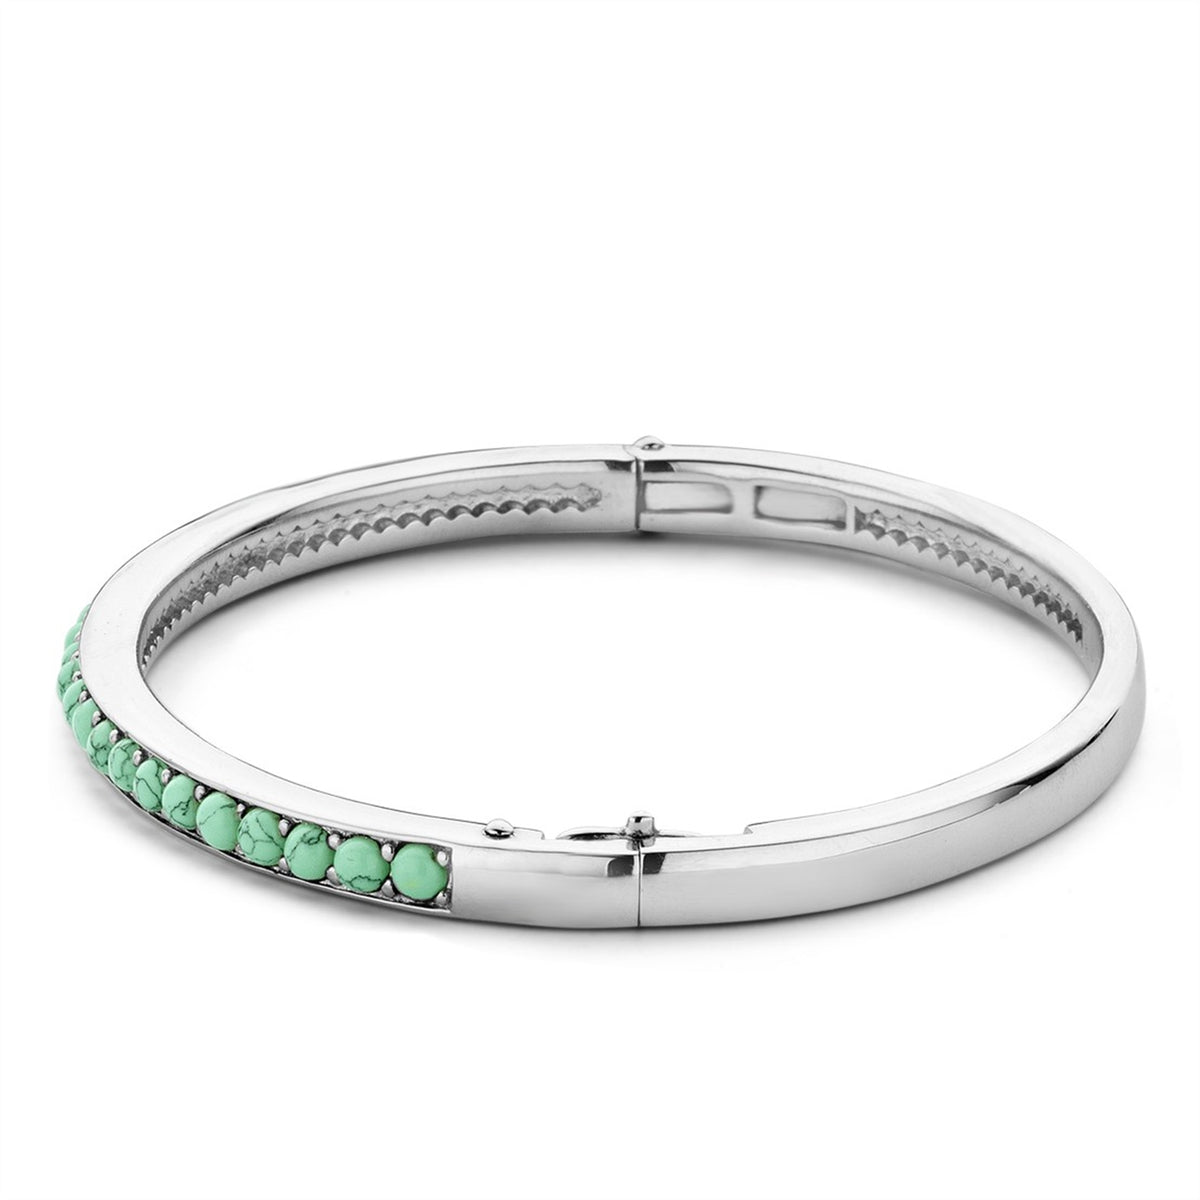 TI SENTO Sterling Silver Hinged Bracelet with Turqoise Colored Stones.